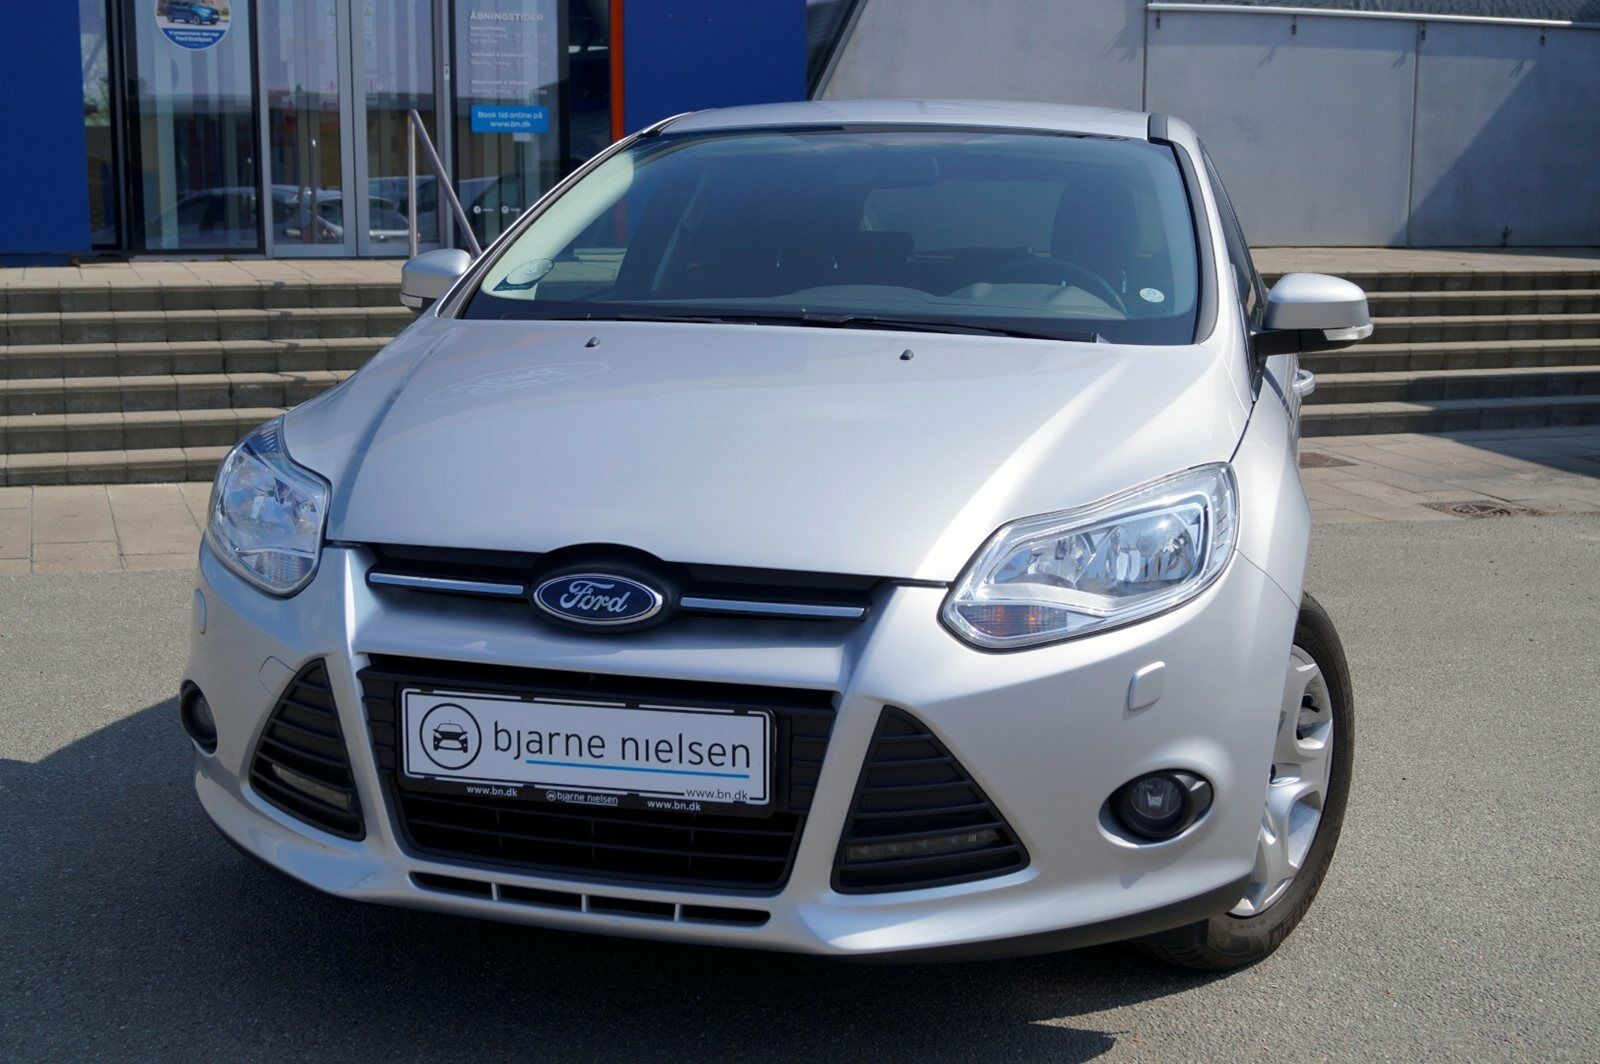 Ford Focus 1,6 Ti-VCT 105 Trend - billede 1